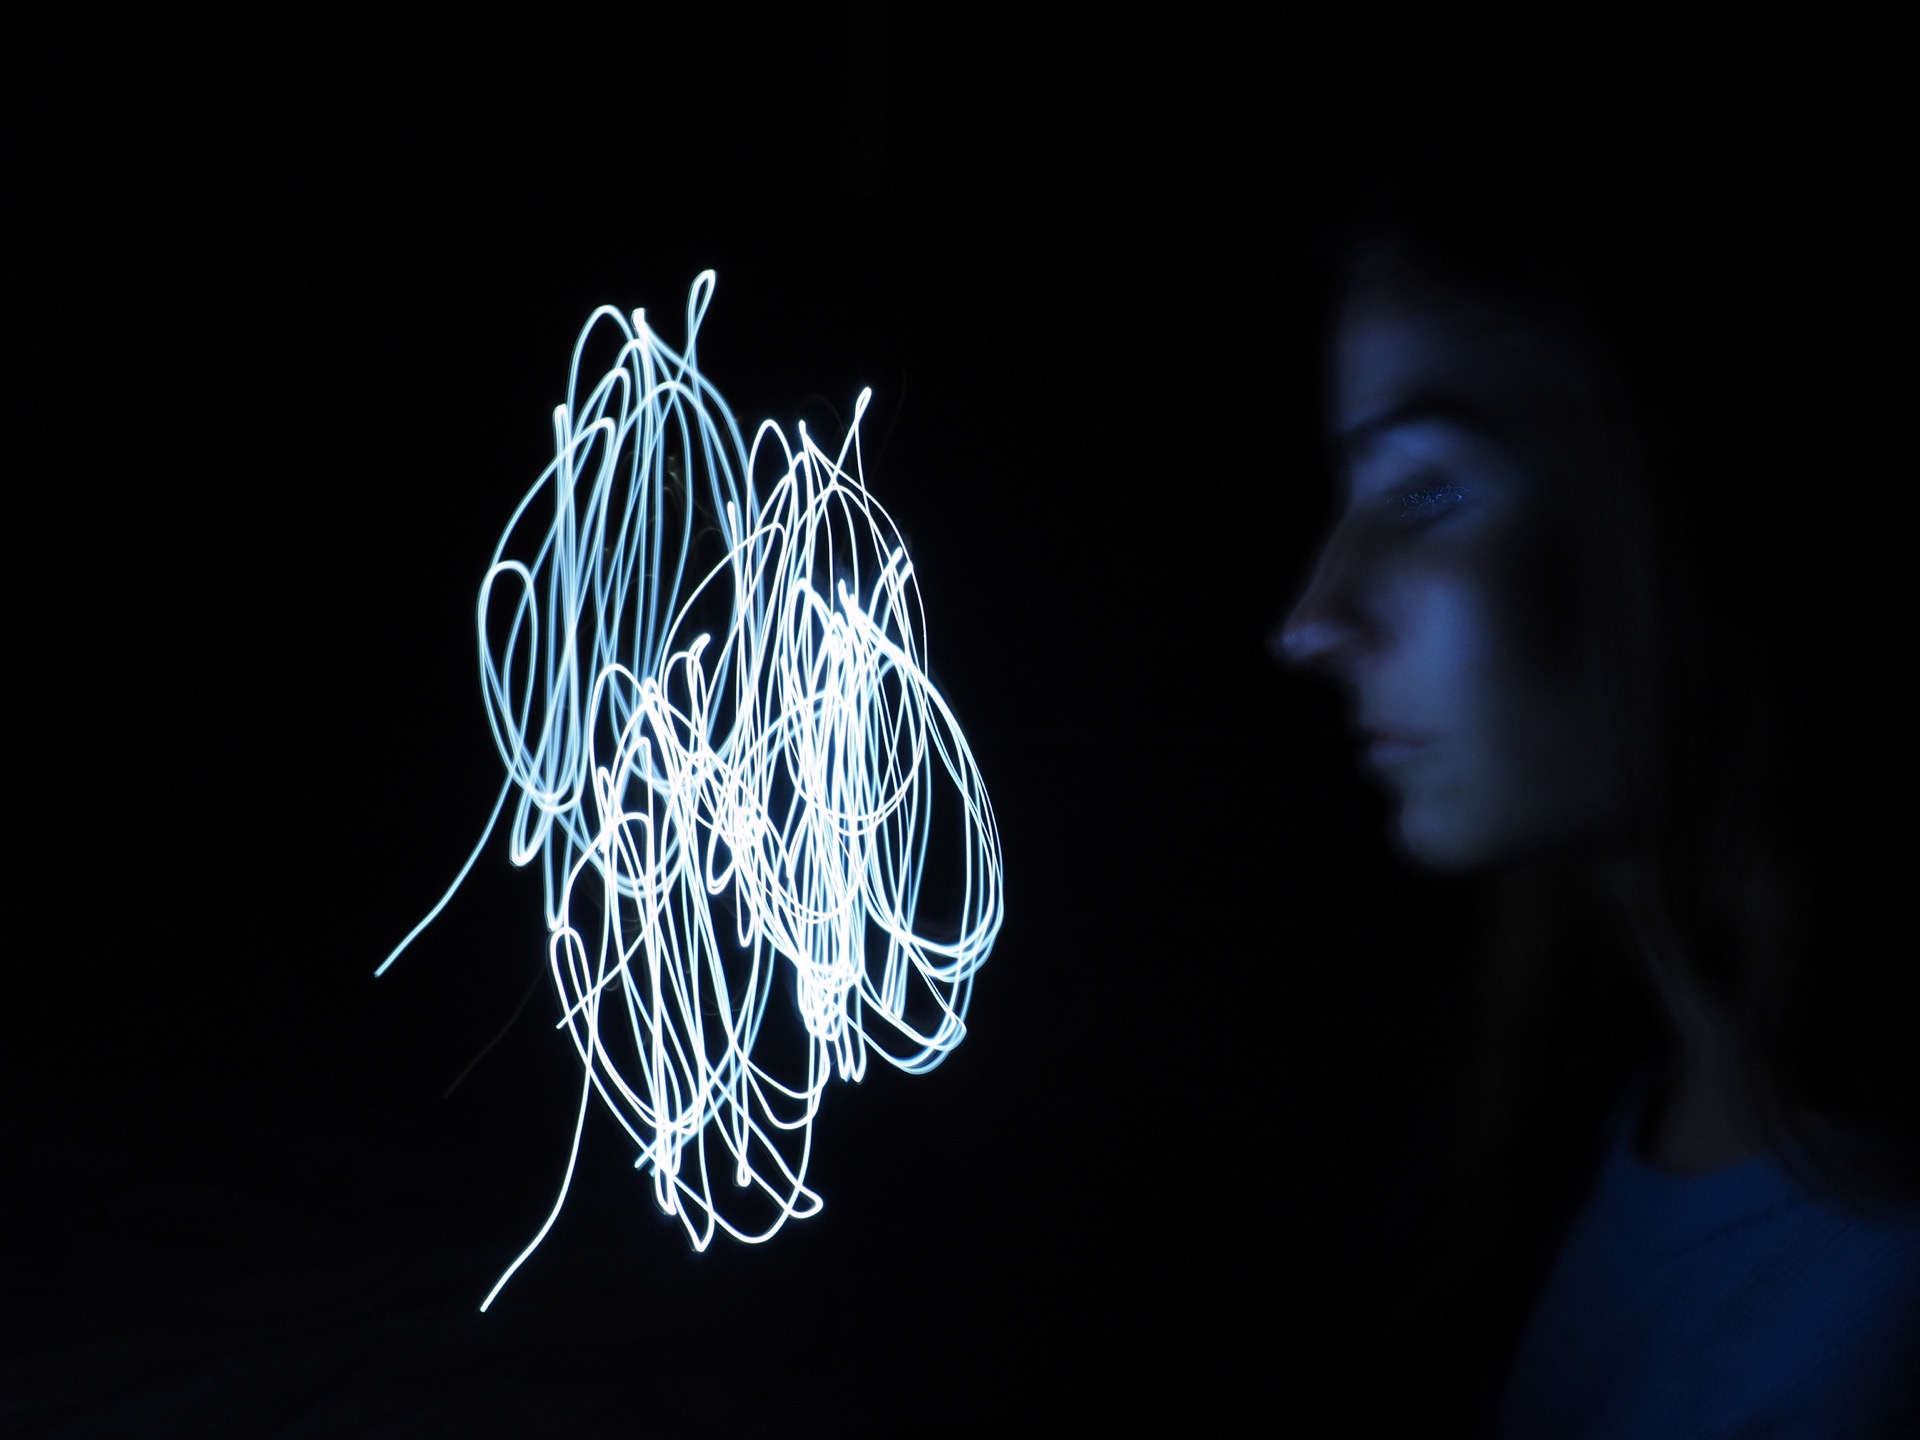 A Self portrait of Erika Degoute Photographer in Sydney showing her looking intensely at a knot of light in a dark room in front of her